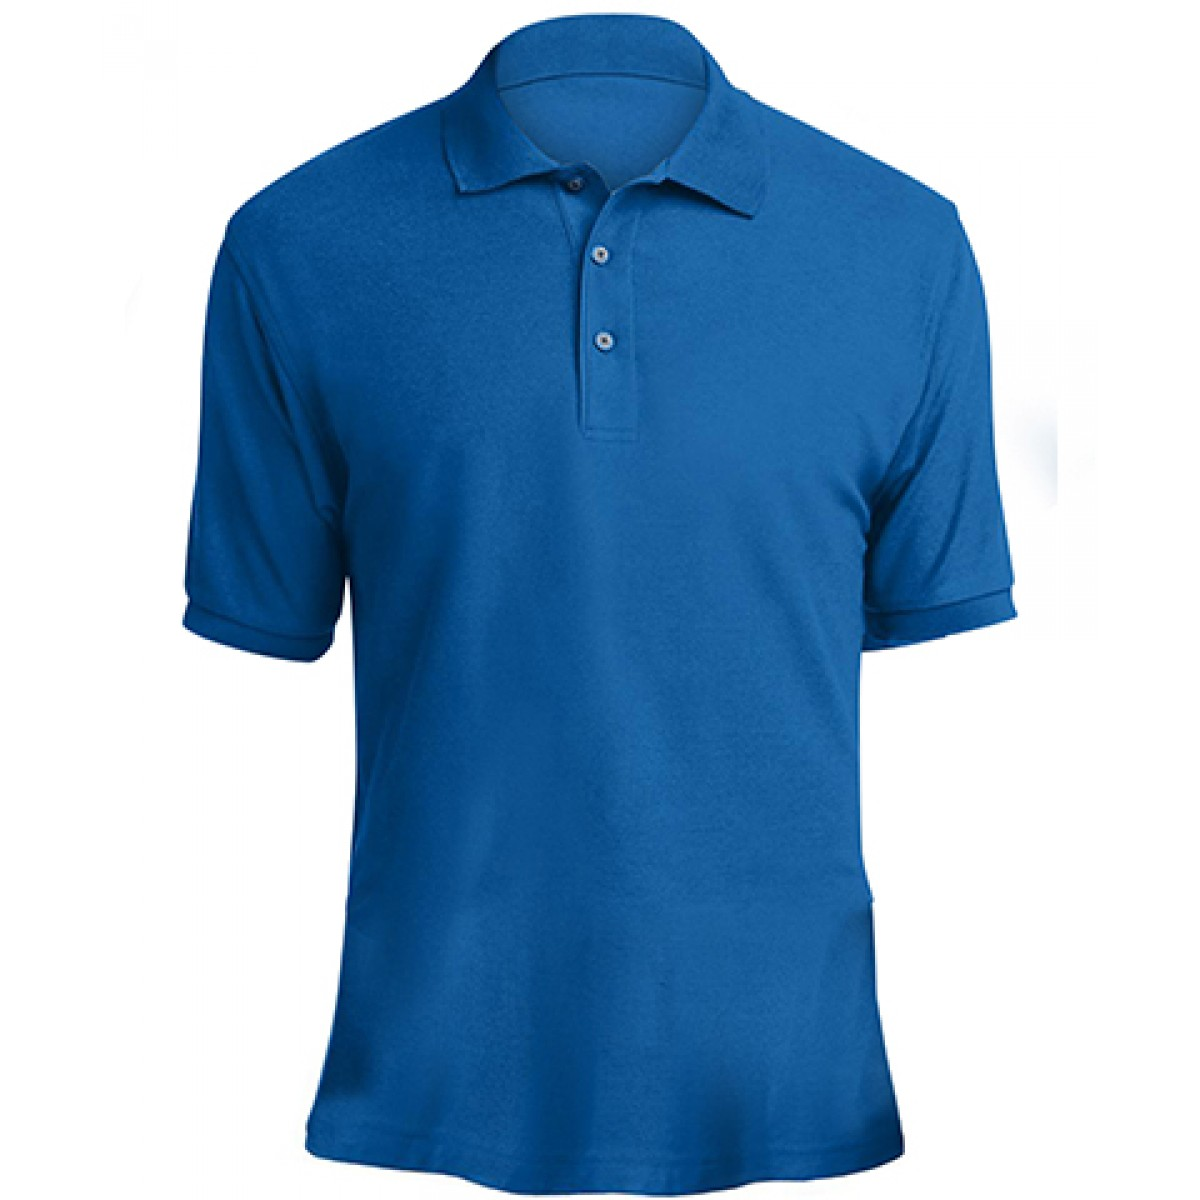 Womens Classic Polo -Royal Blue-2XL